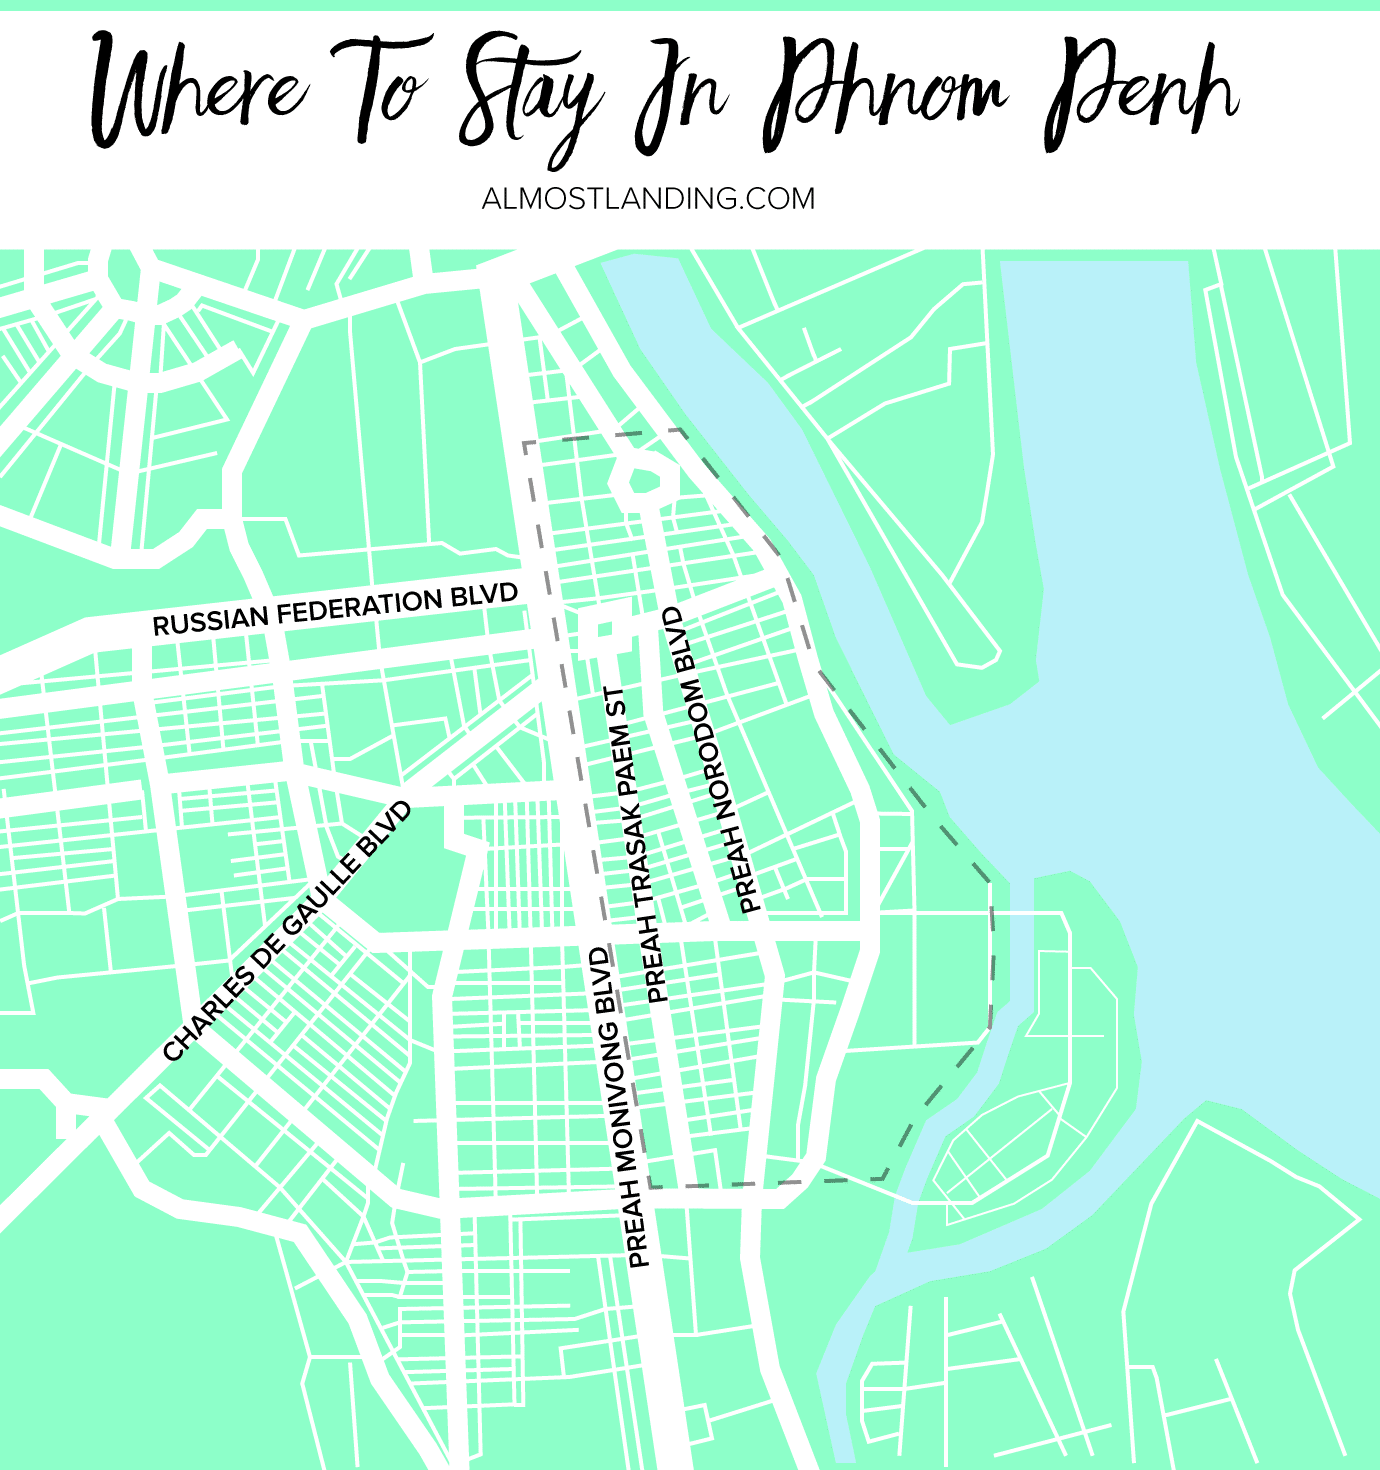 Where To Stay In Phnom Penh Map